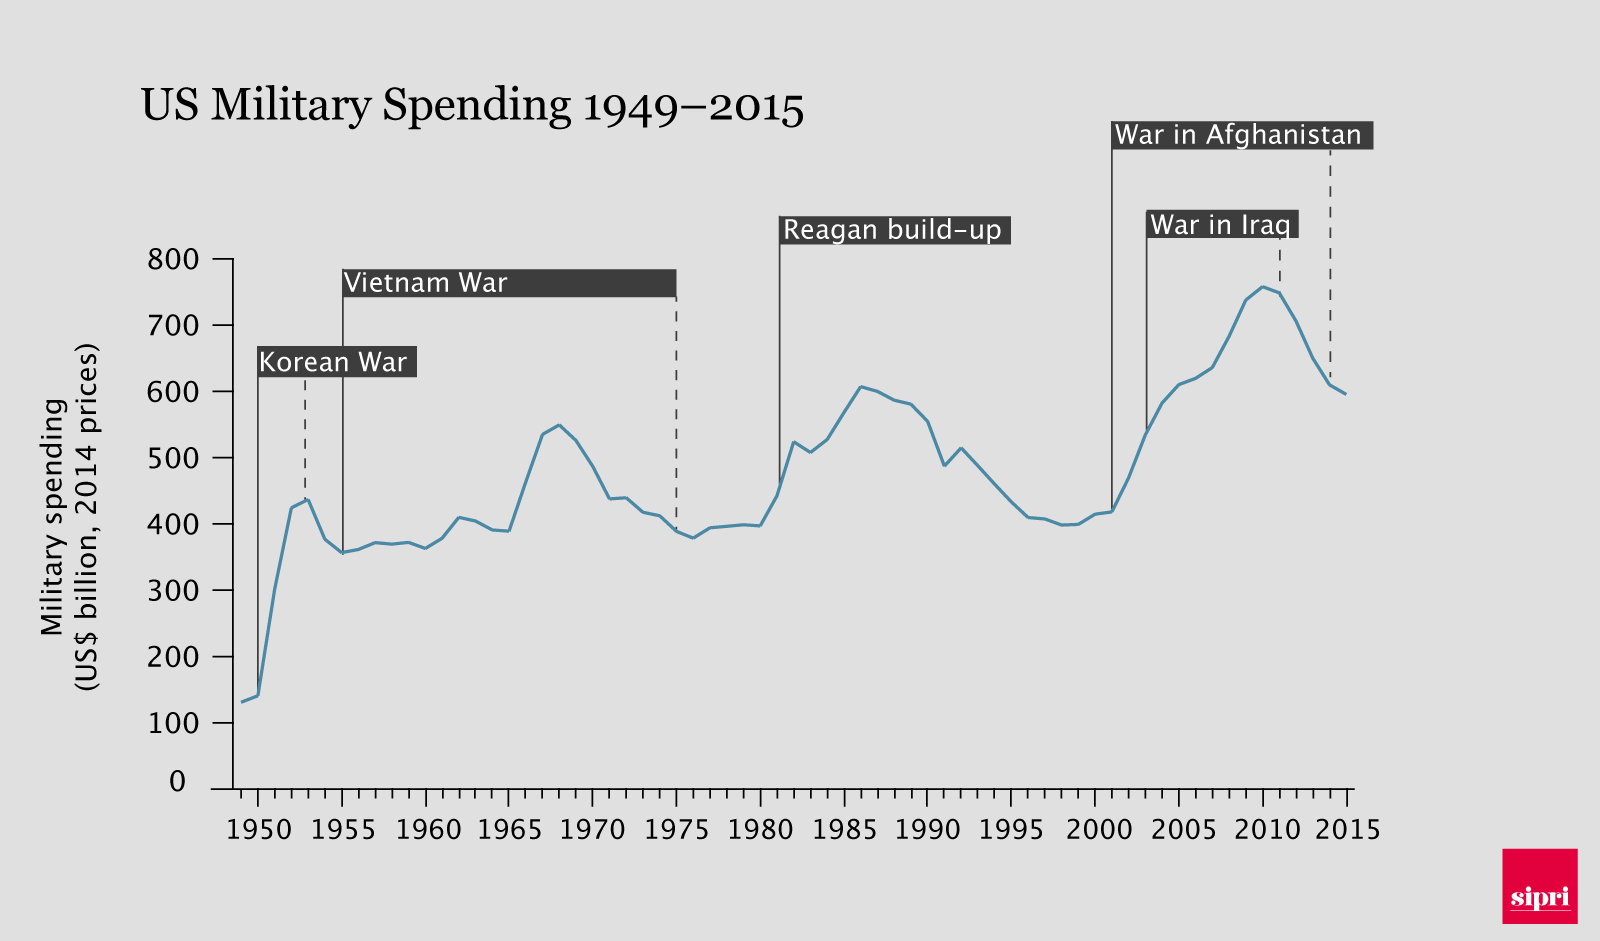 Graph of US military spending 1949-2015